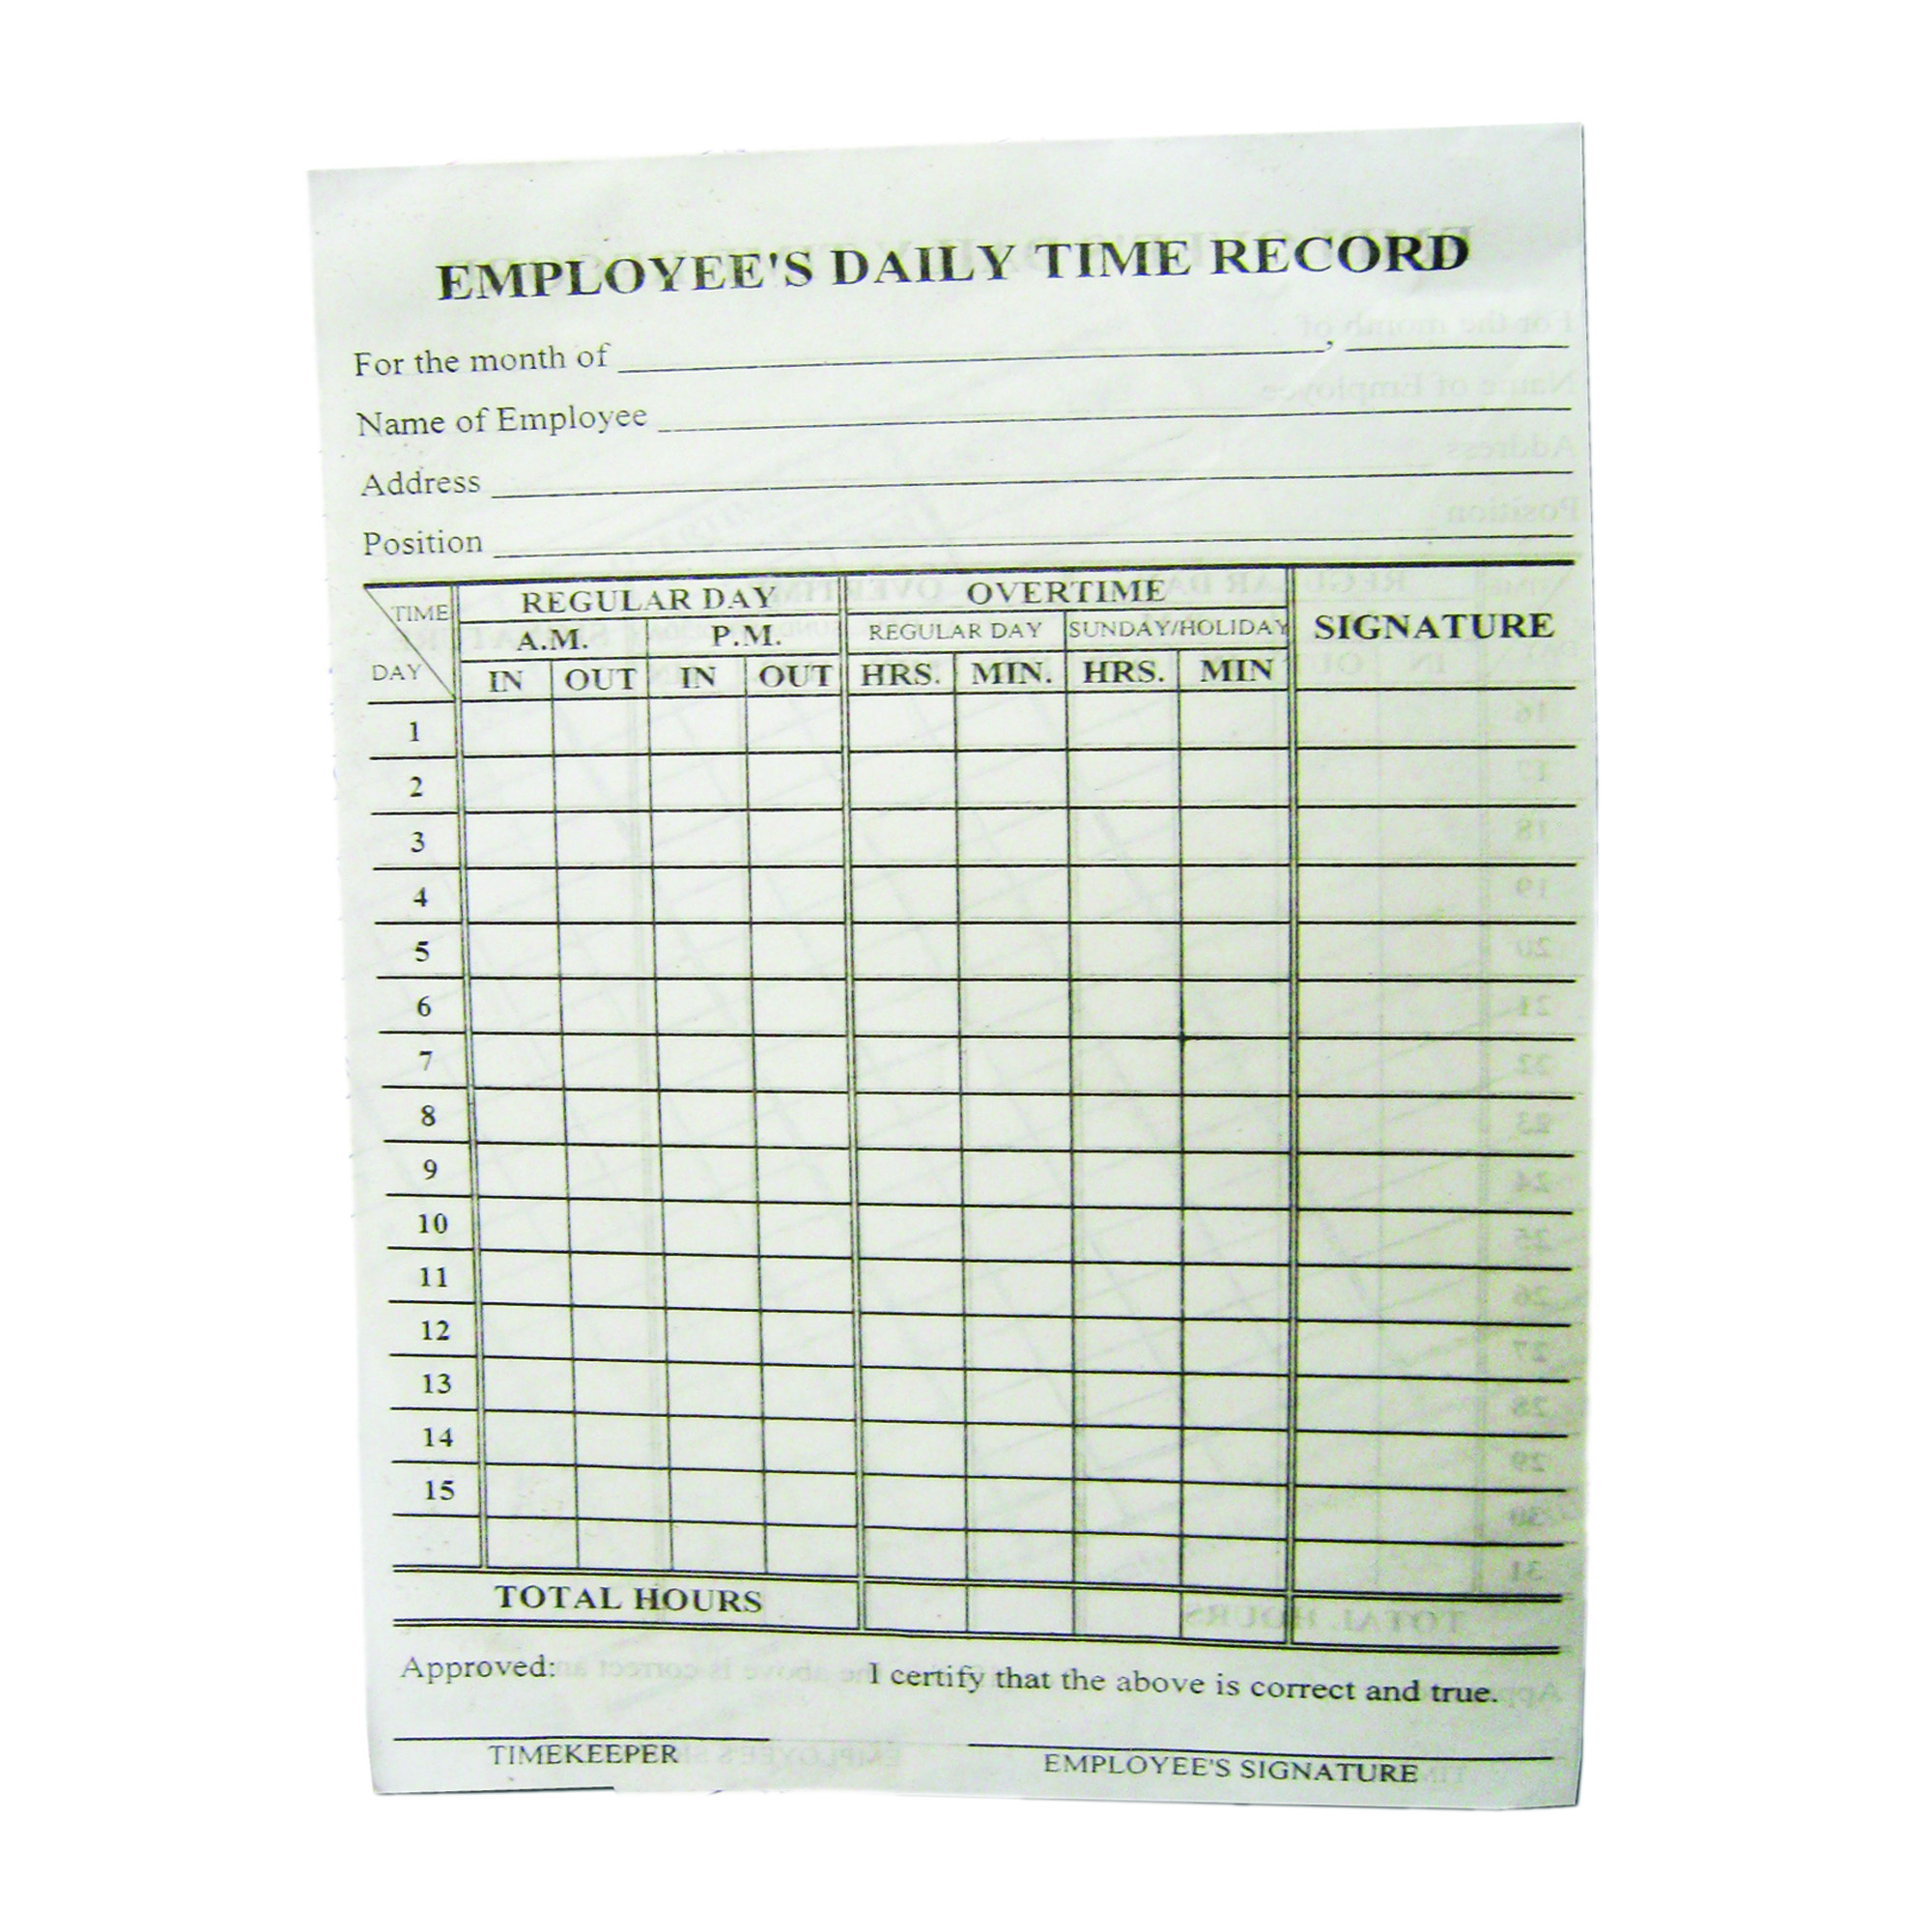 Employees Daily Time Card Set of 100 | Lazada PH